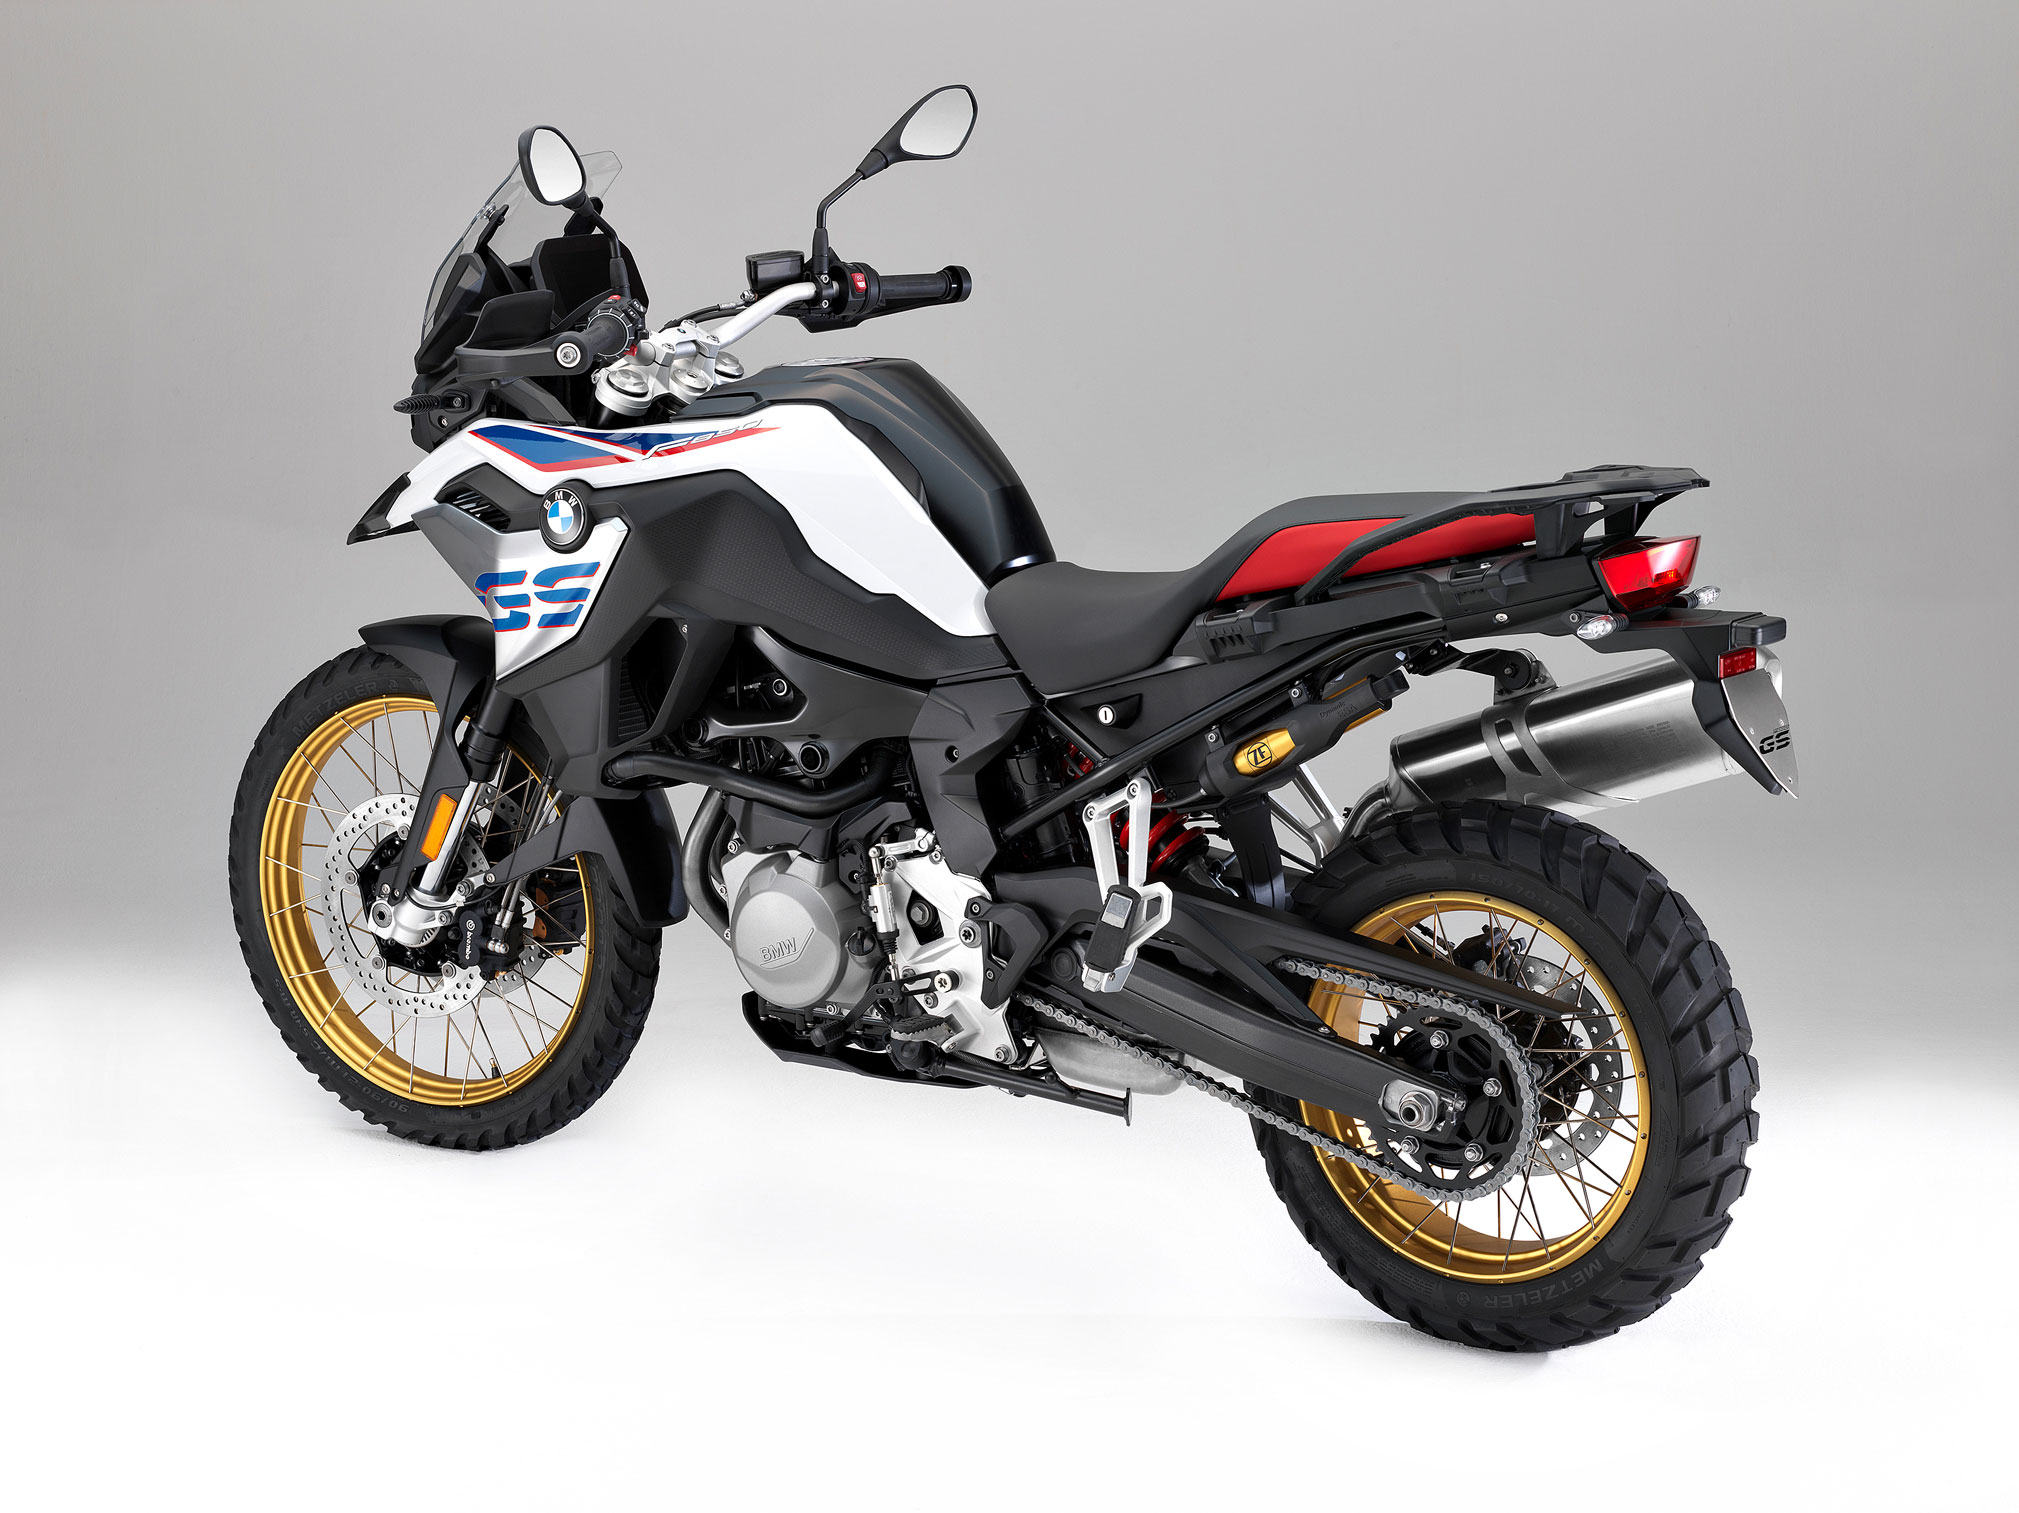 2019 bmw f850gs guide total motorcycle. Black Bedroom Furniture Sets. Home Design Ideas